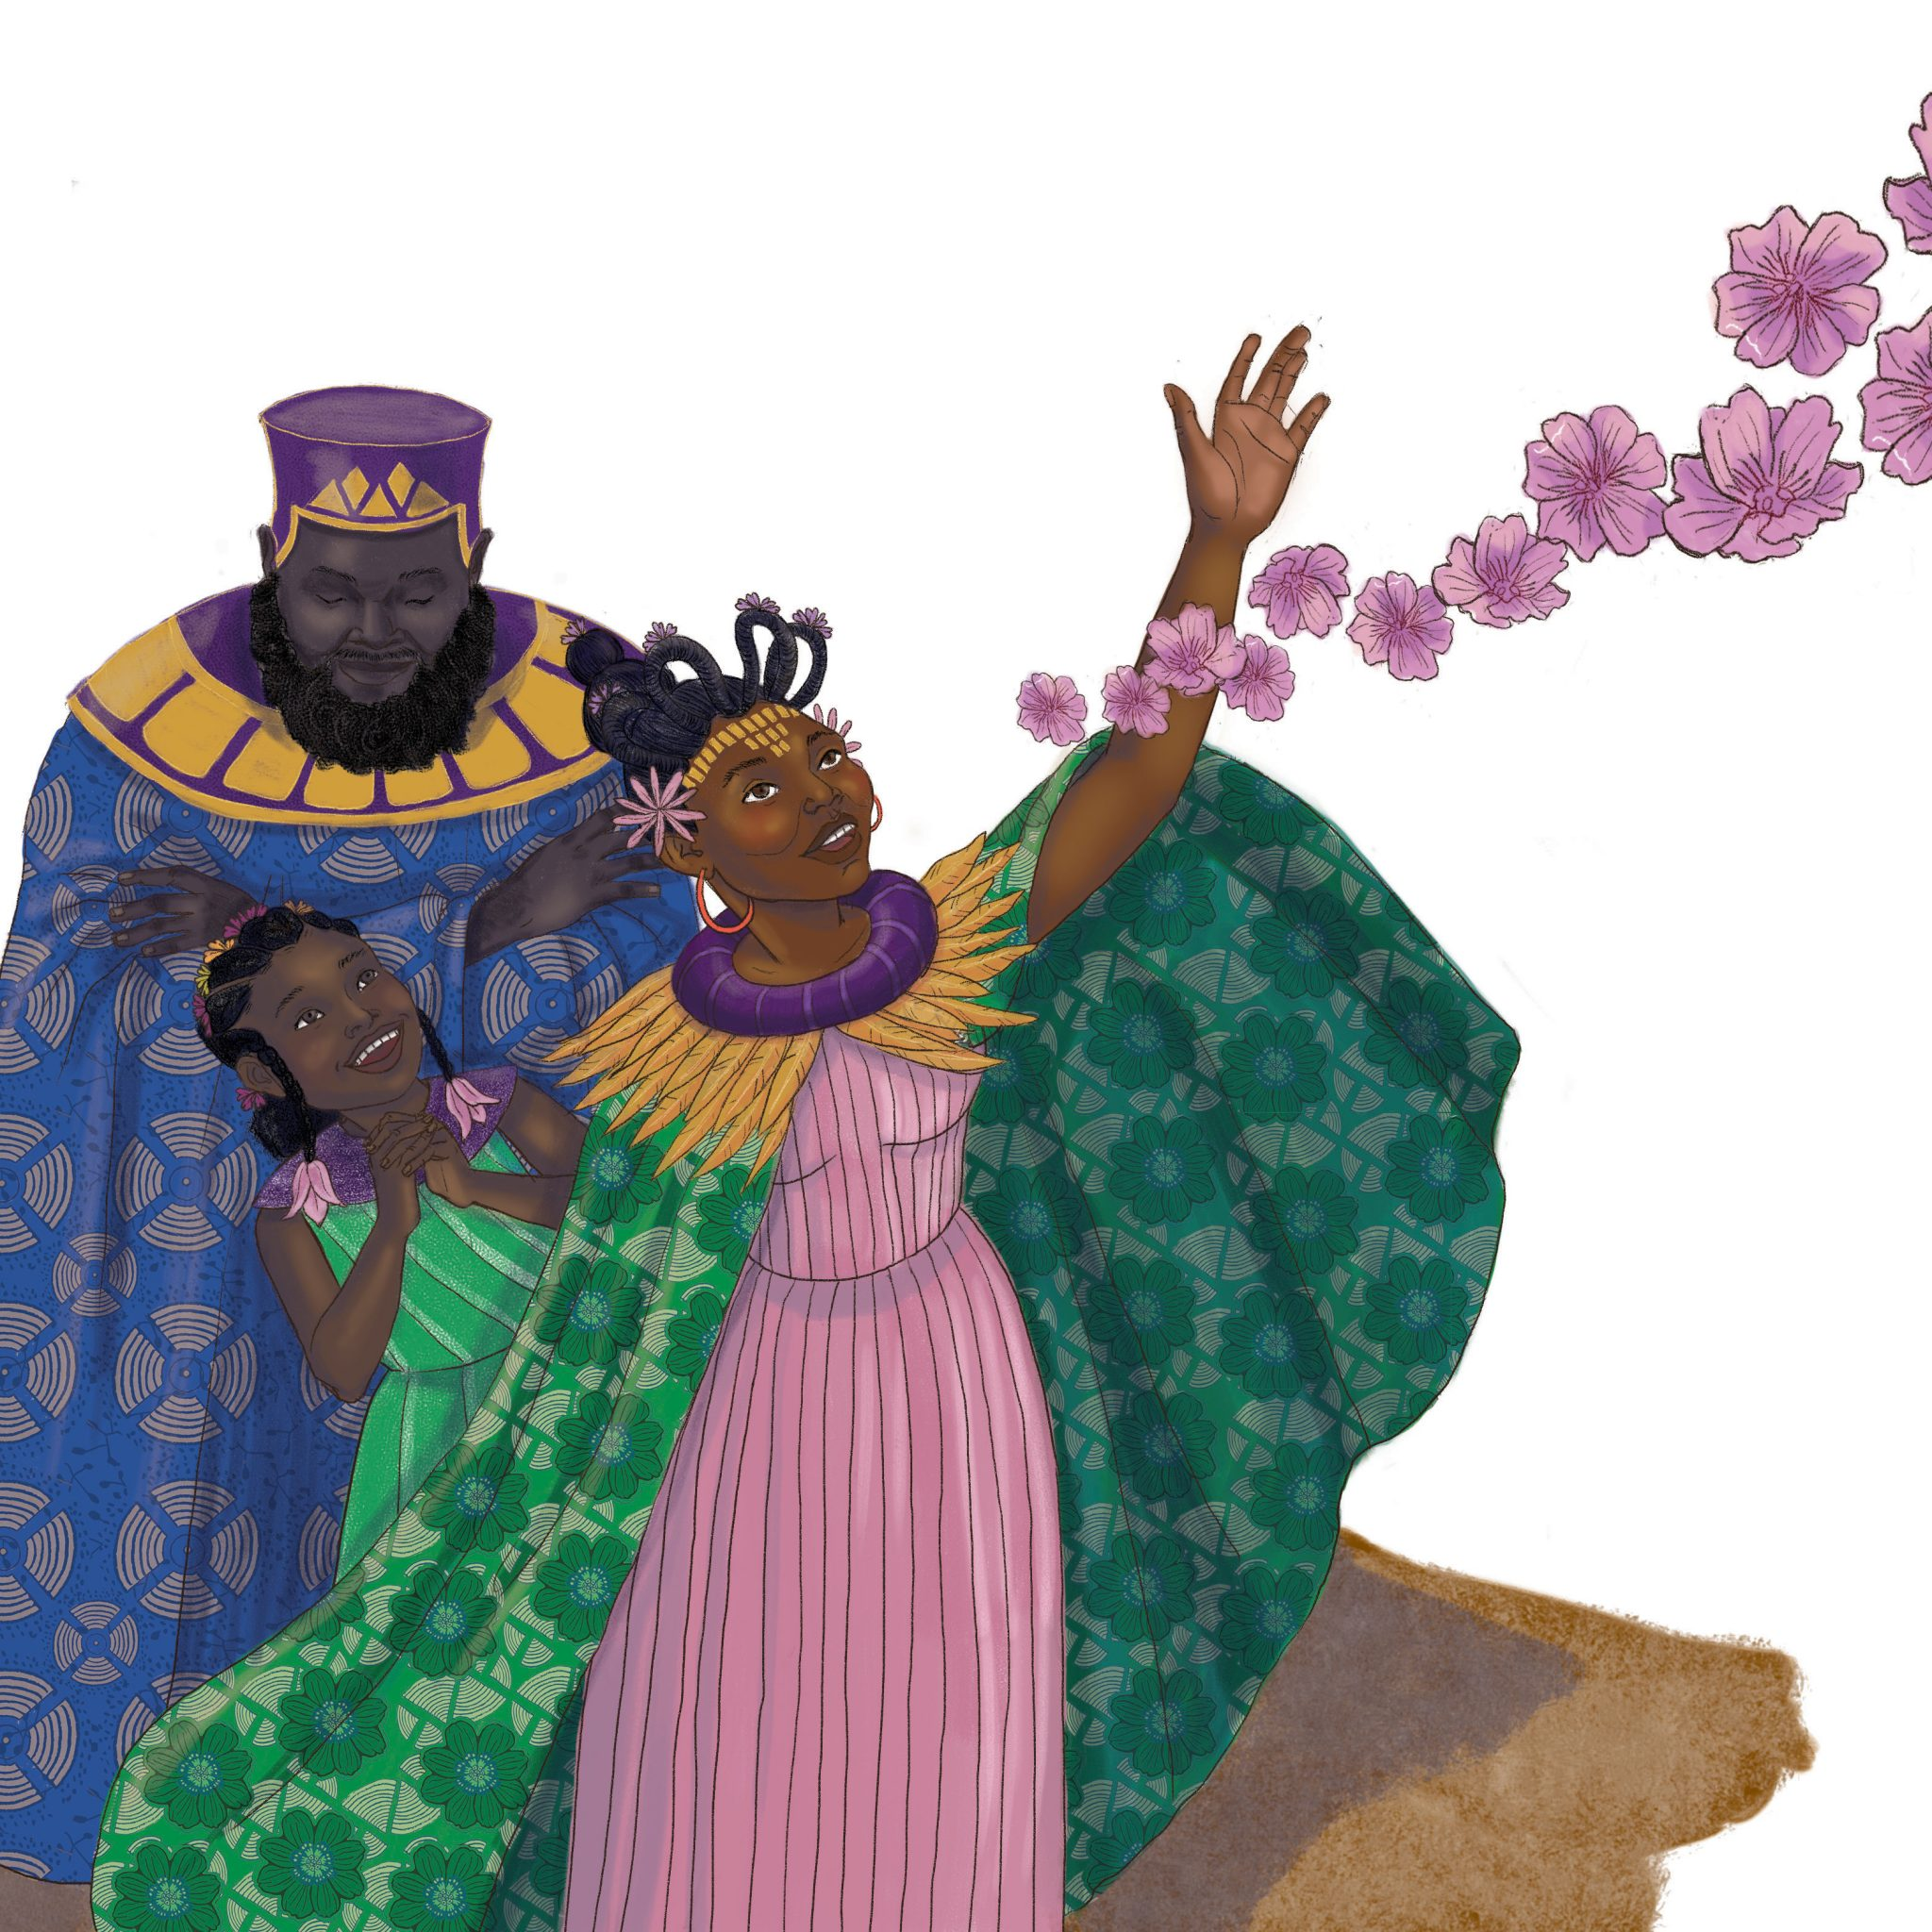 Illustration by Cherise Harris, from Nia and the Kingdoms of Celebration by Philip Robinson.